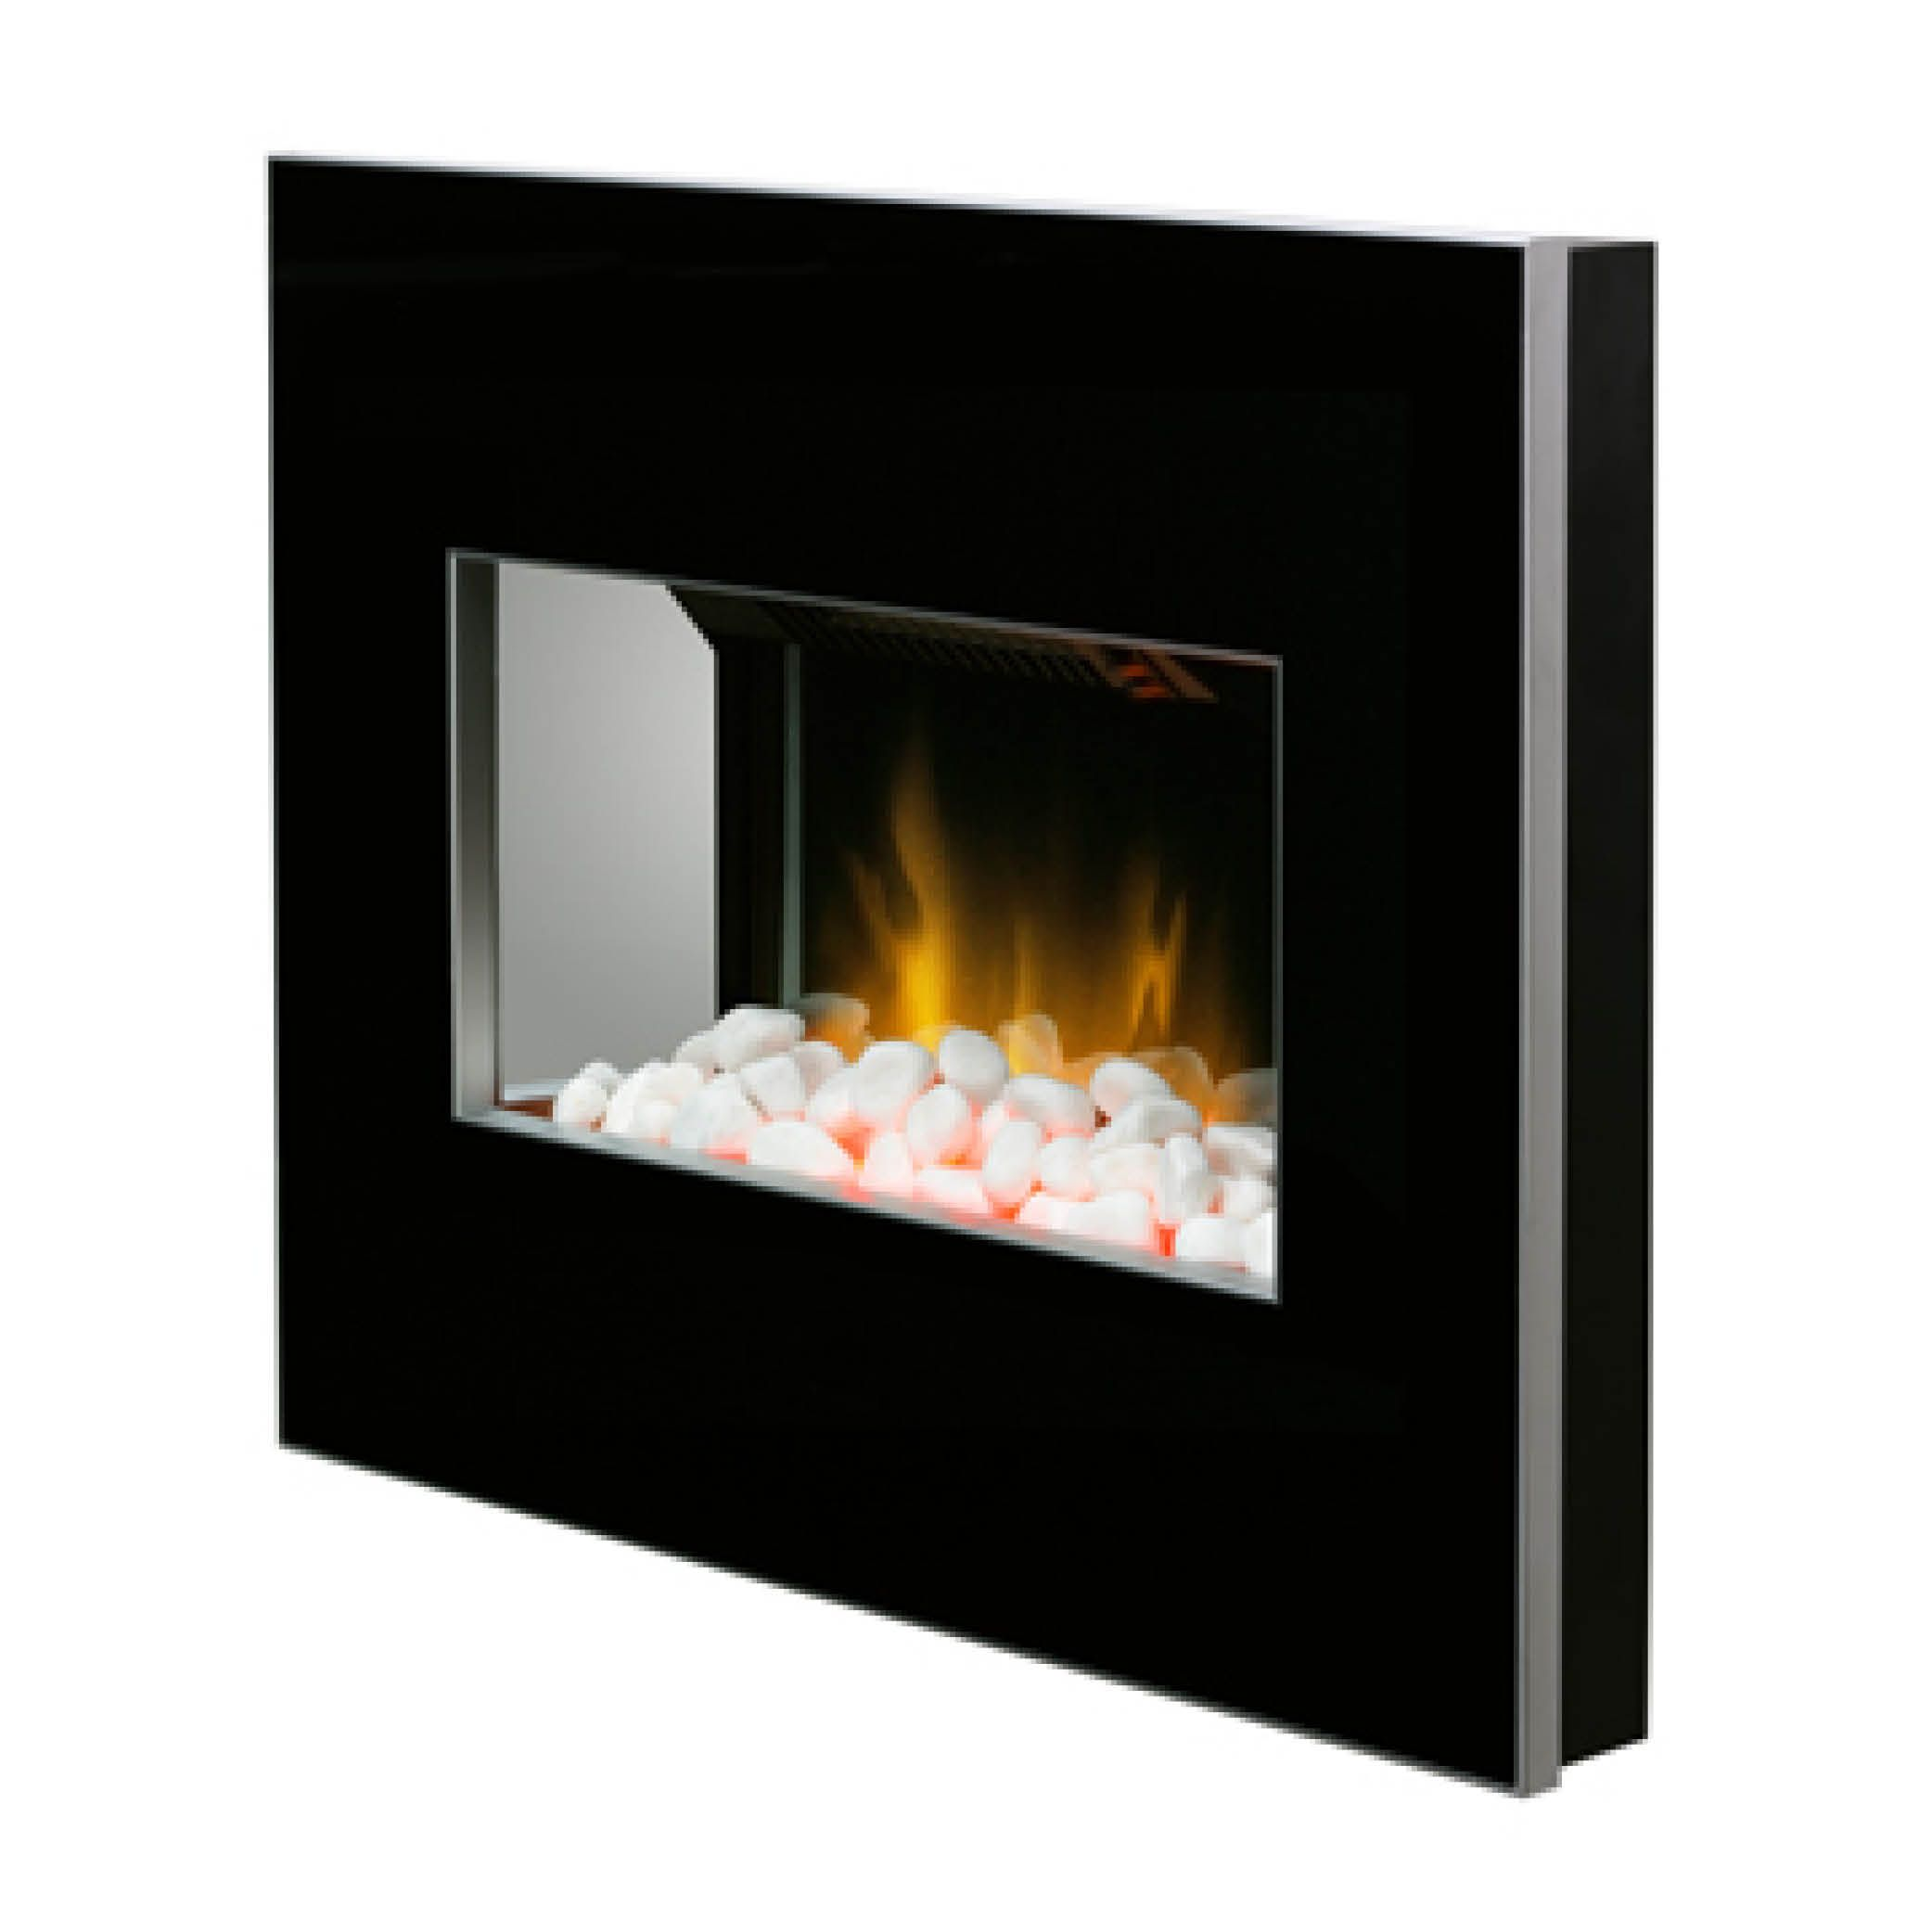 clova black 2kw wall mounted electric fire with optiflame pebble